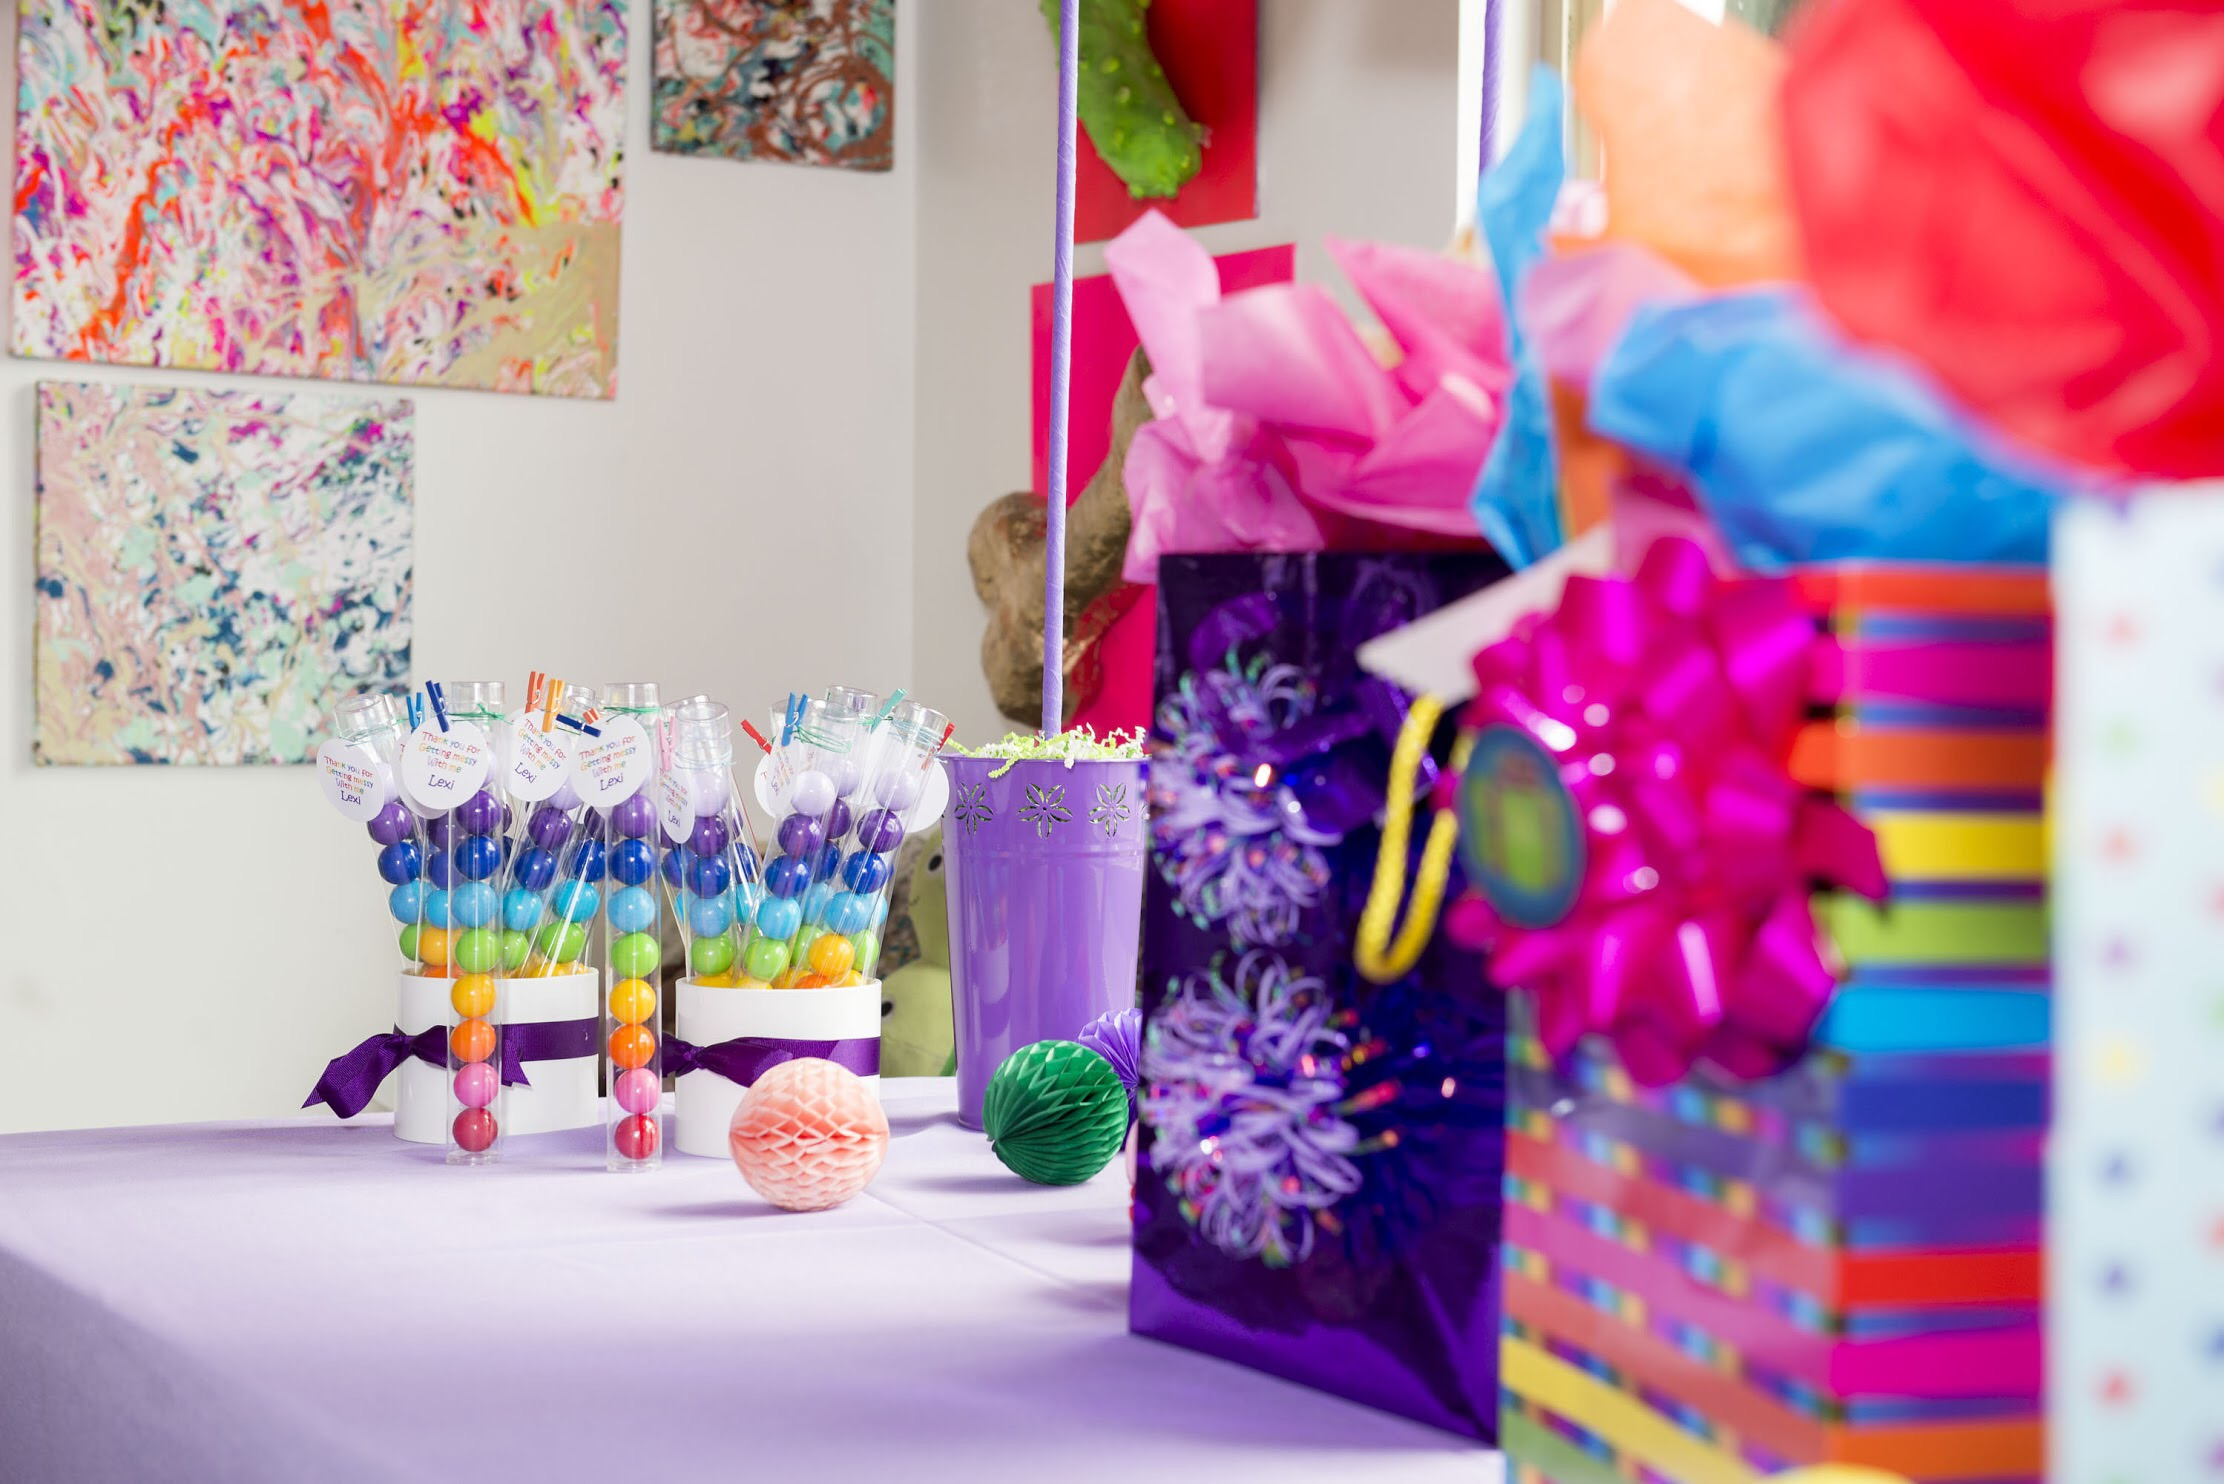 Come see all the art themed party ideas on Mint Event Design www.minteventdesign.com #kidsparty #kidspartyideas #birthdaypartyideas #artparty #rainbowparty